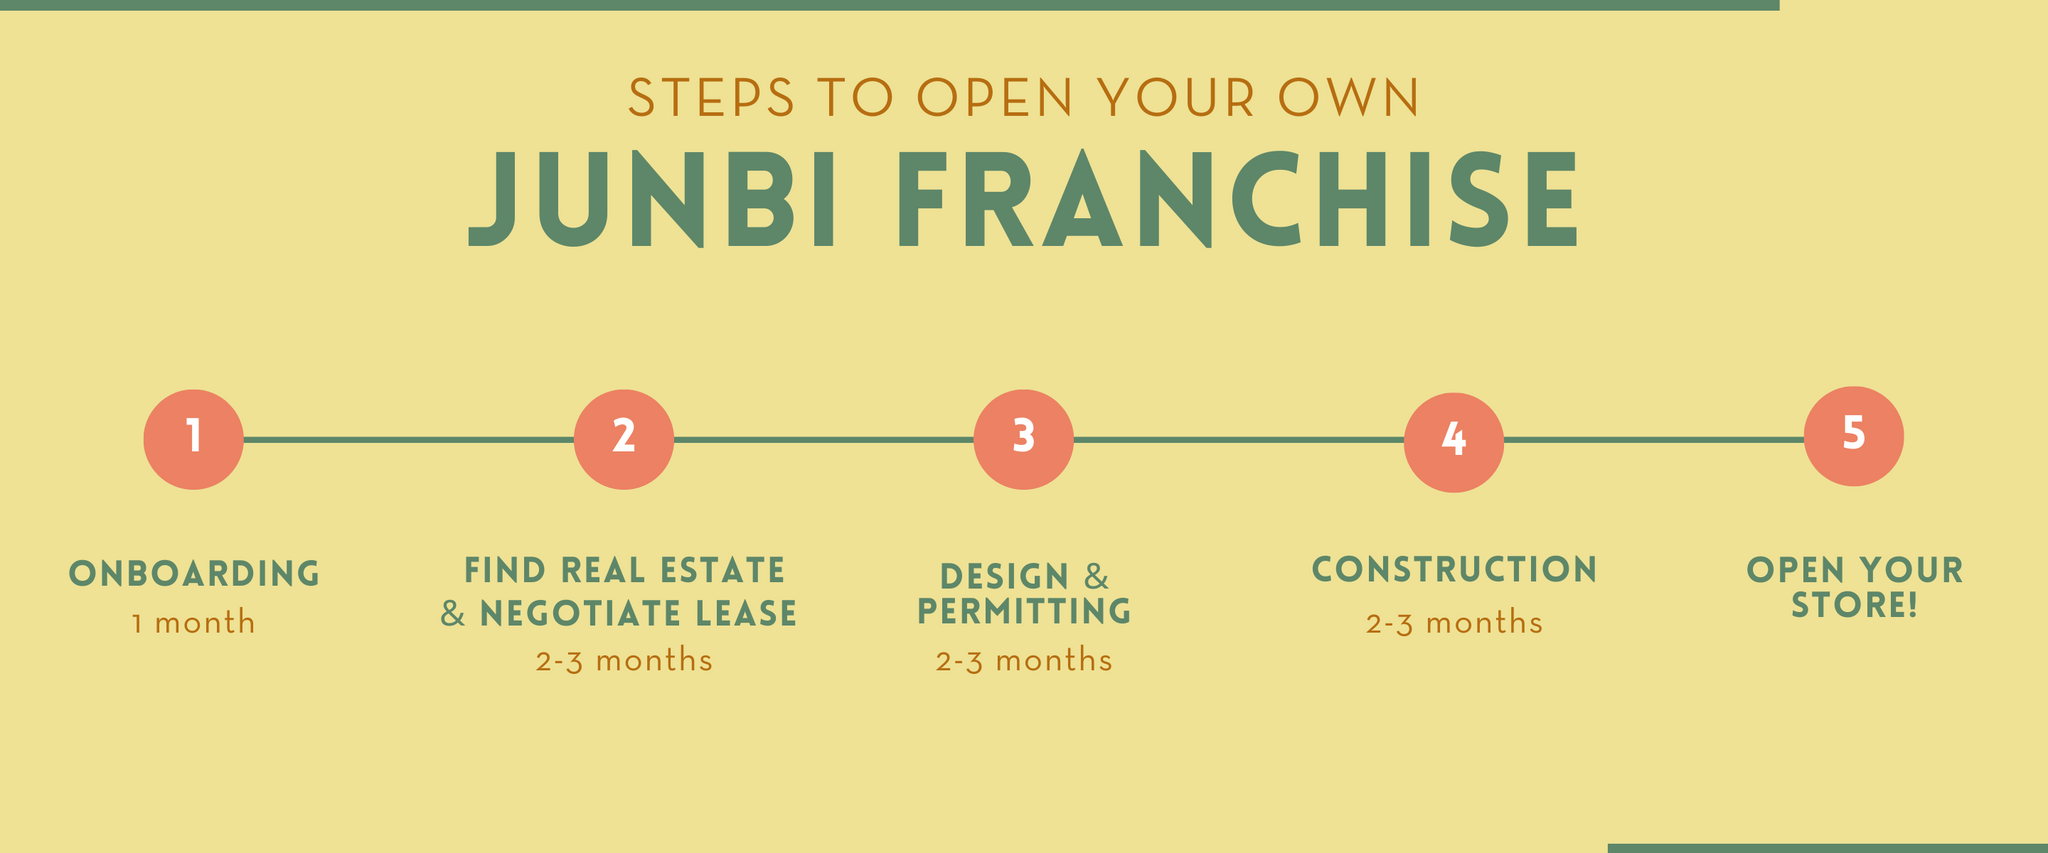 Steps to open a junbi franchise